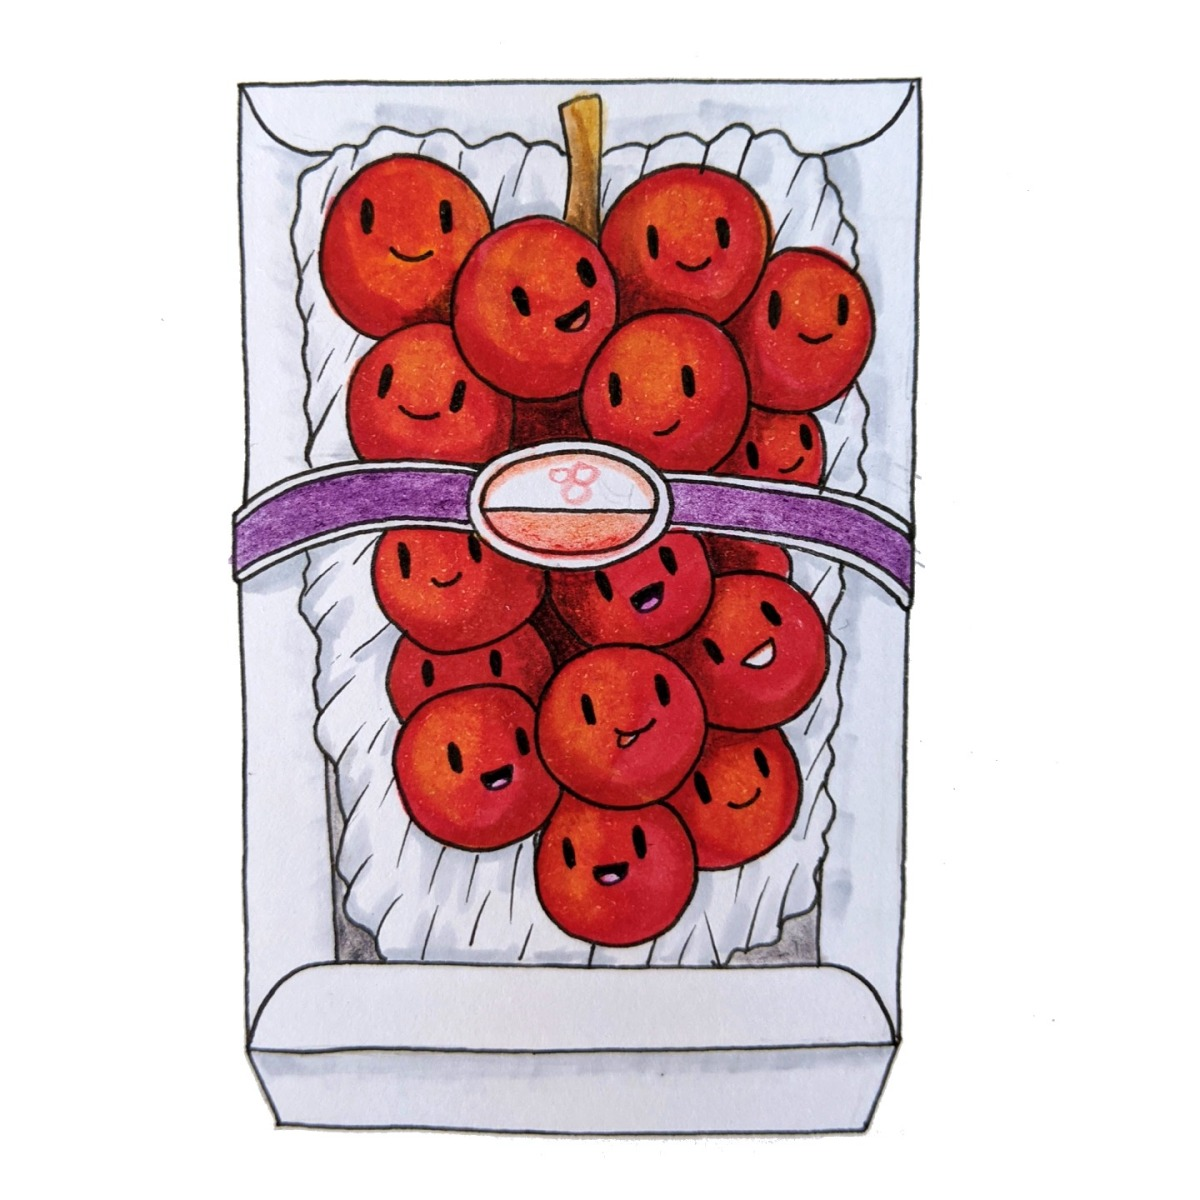 worlds most expensive grapes ruby roman japan drawing